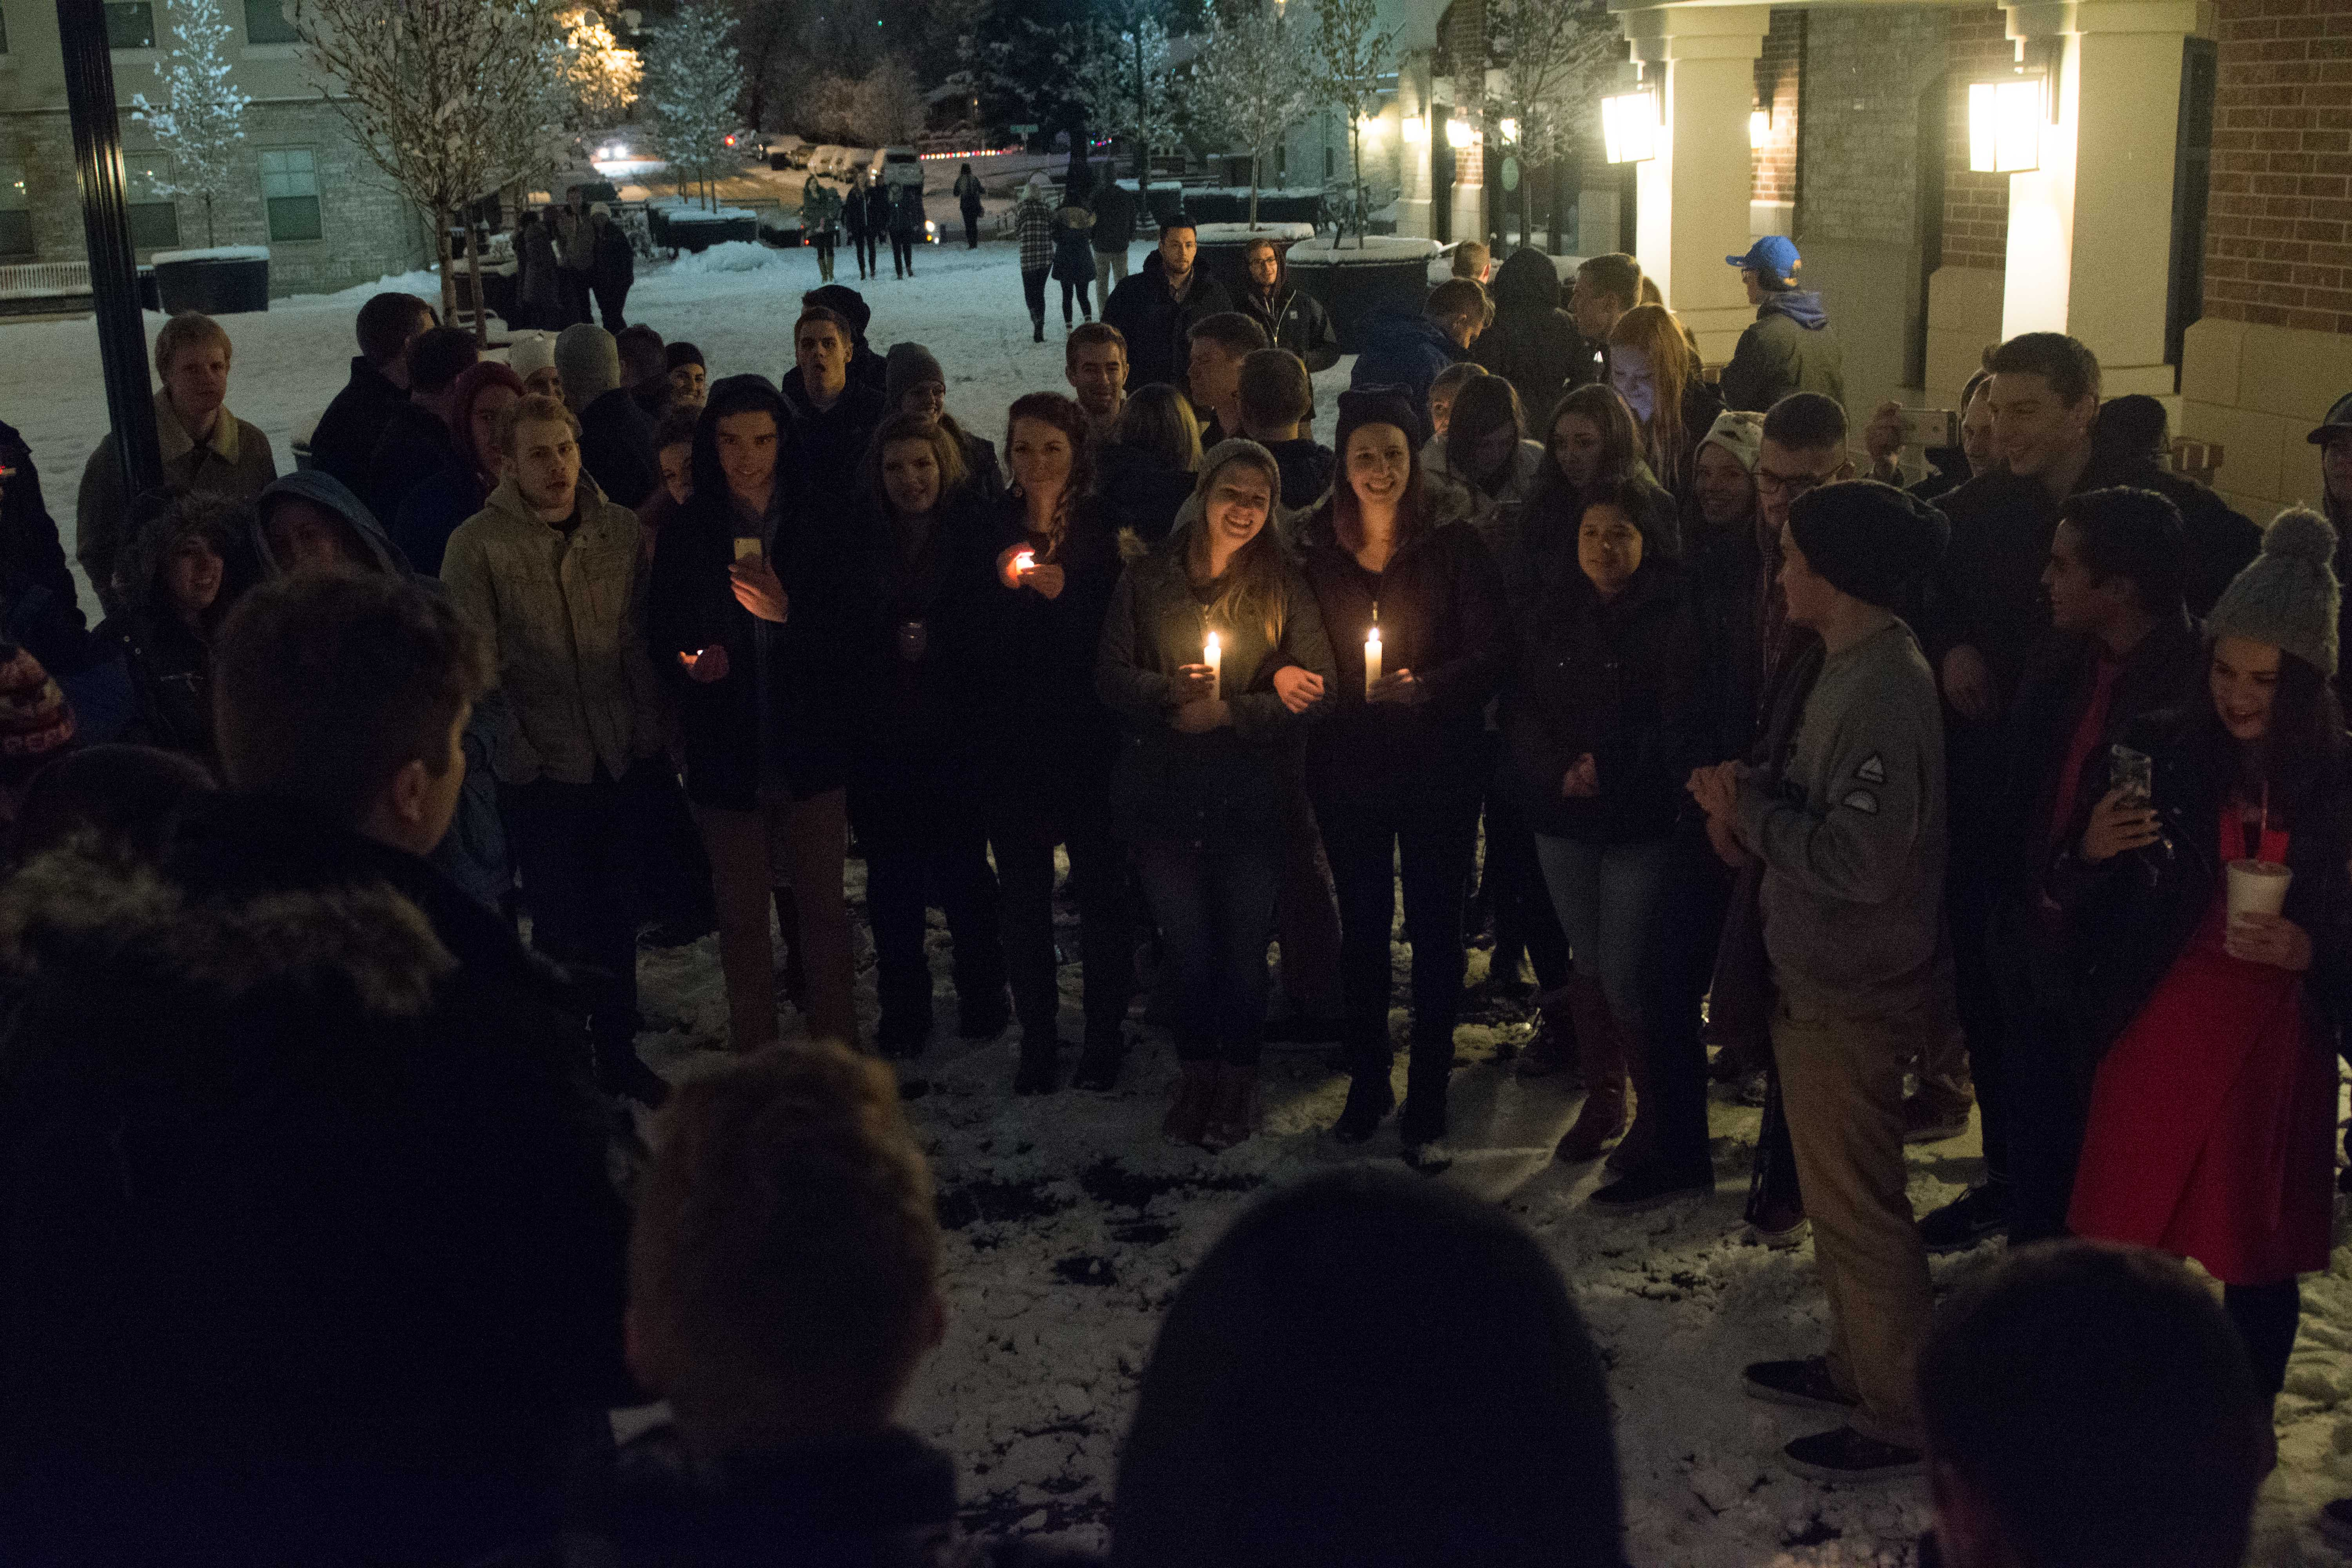 Students gather at the Village at South Campus to remember Harambe's life. (Ryan Turner)